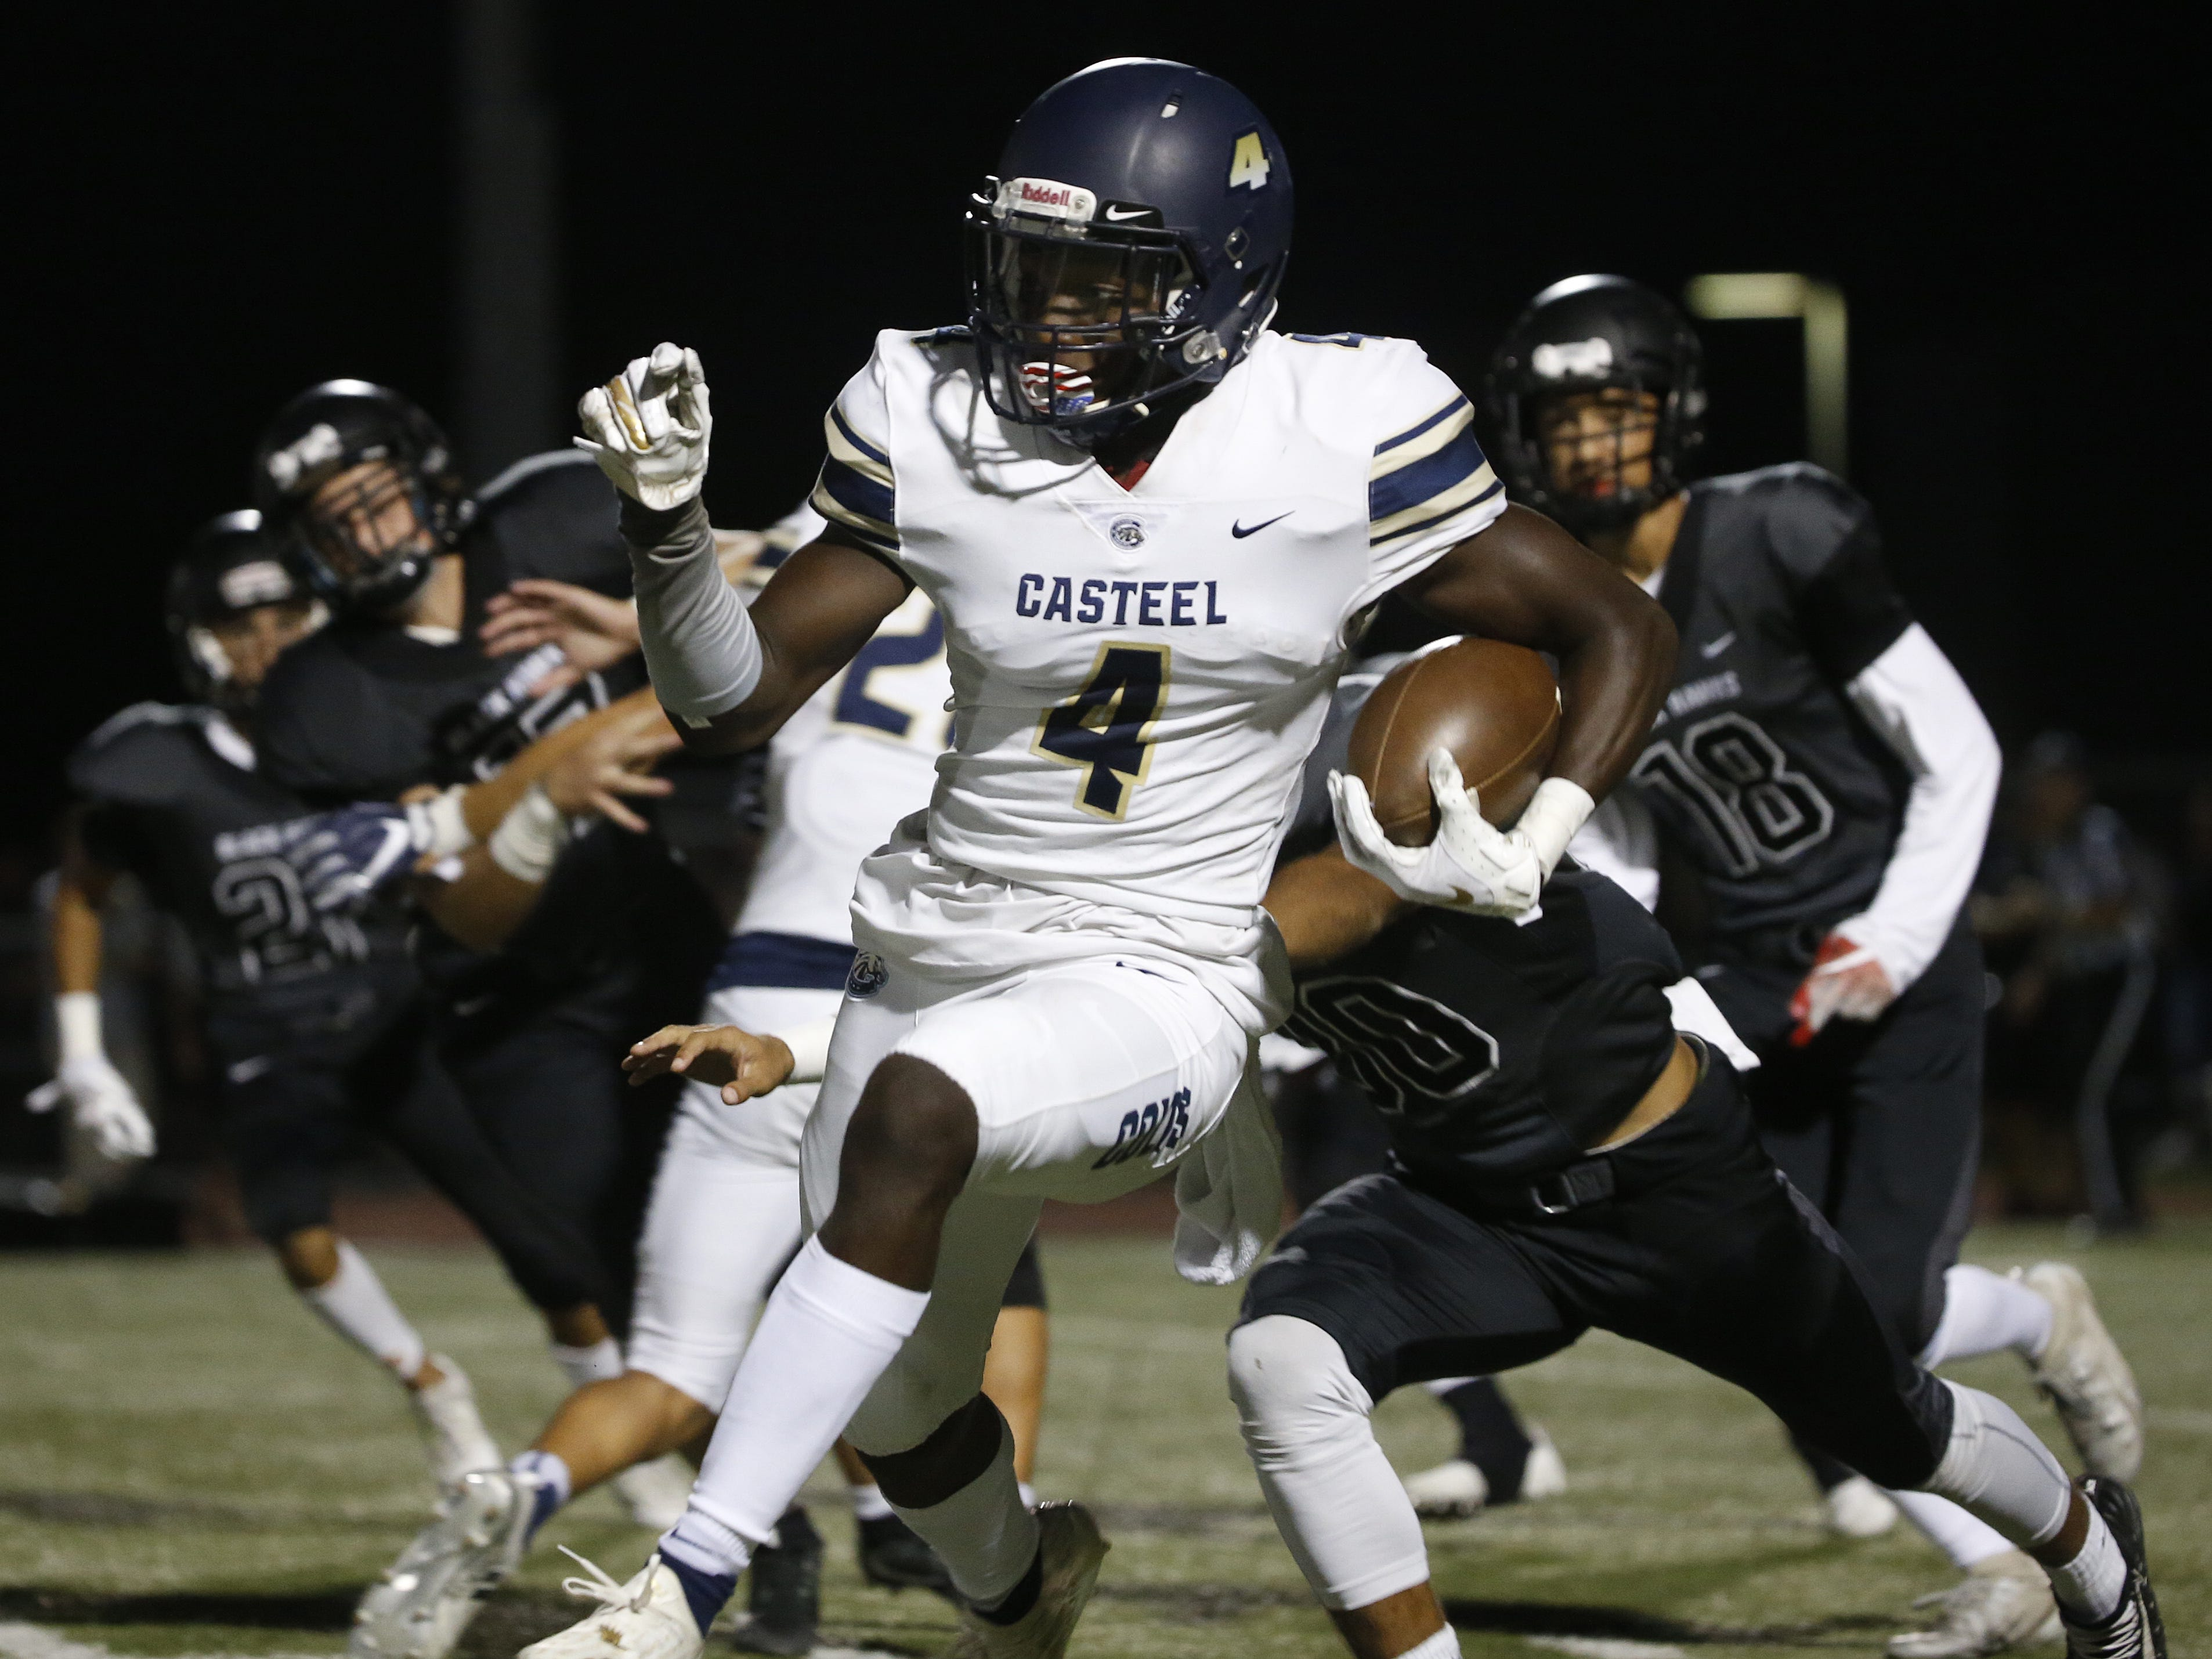 Casteel's Khyheem Waleed (4) returns a kick against Williams Field at Williams Field High School in Gilbert, Ariz. on Sept. 21, 2018.  #azhsfb